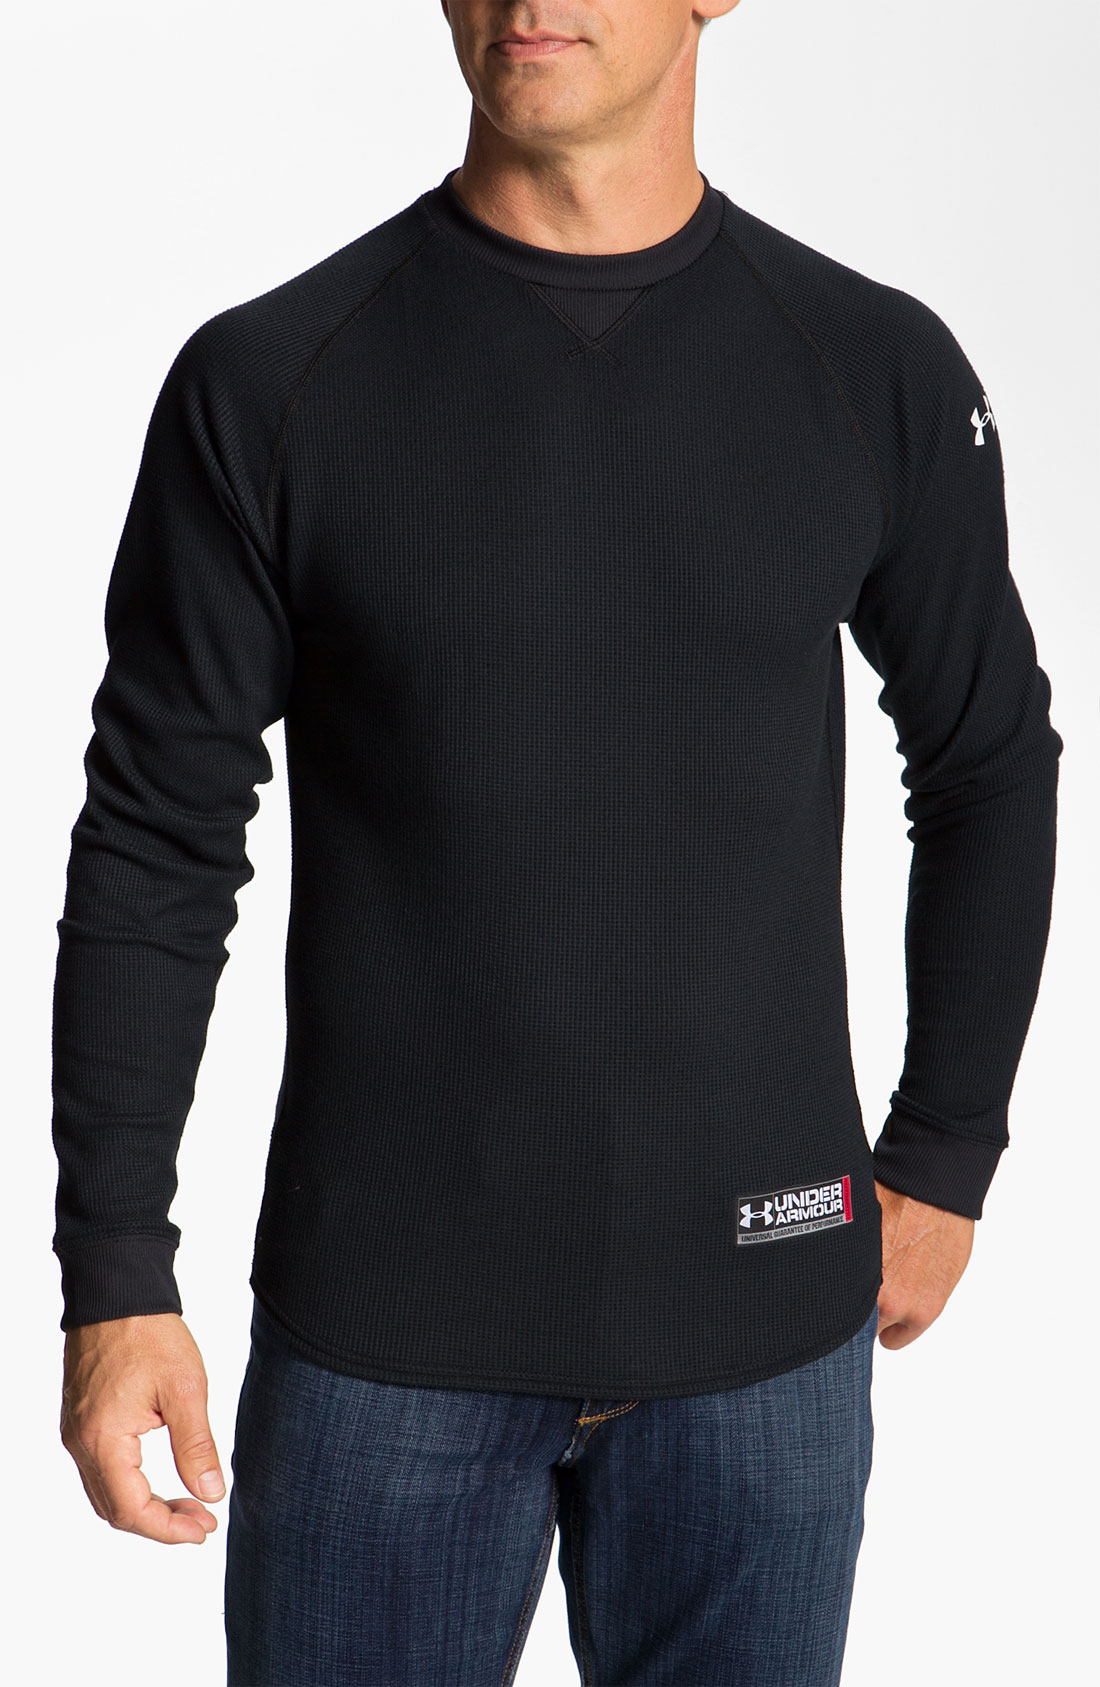 under armour coldgear thermal tshirt in black for men lyst